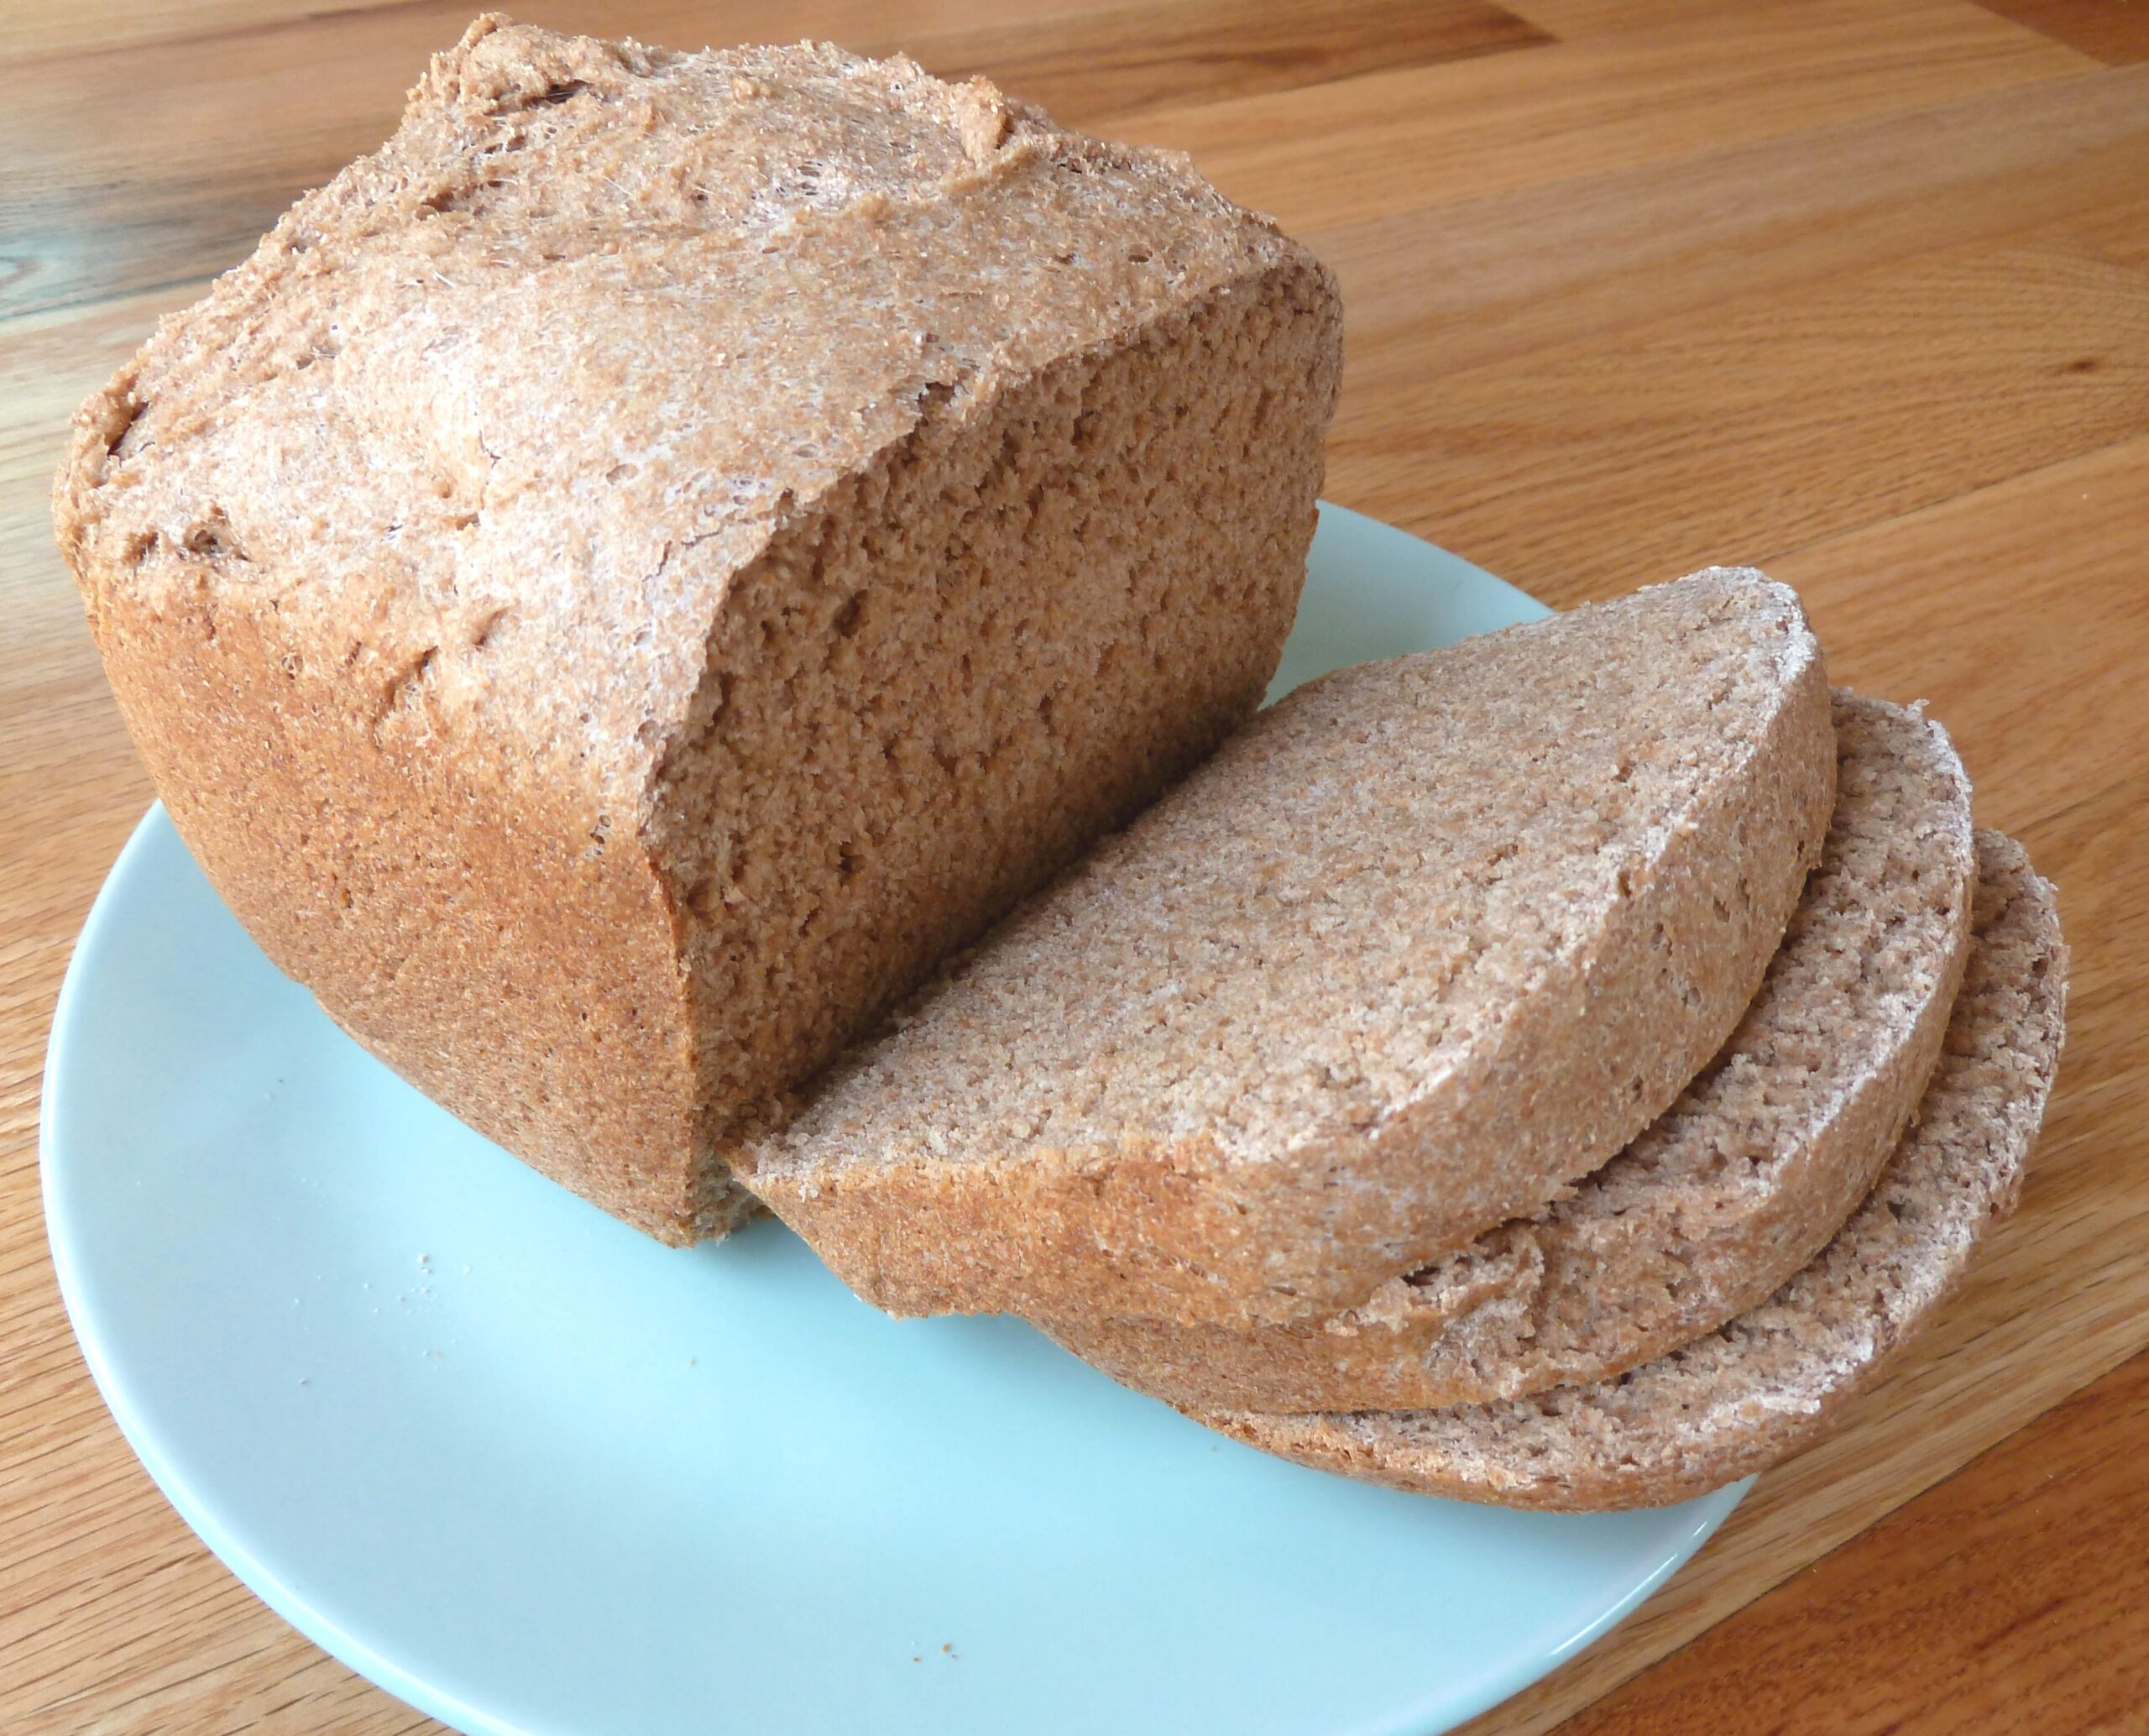 homemade whole wheat bread sliced